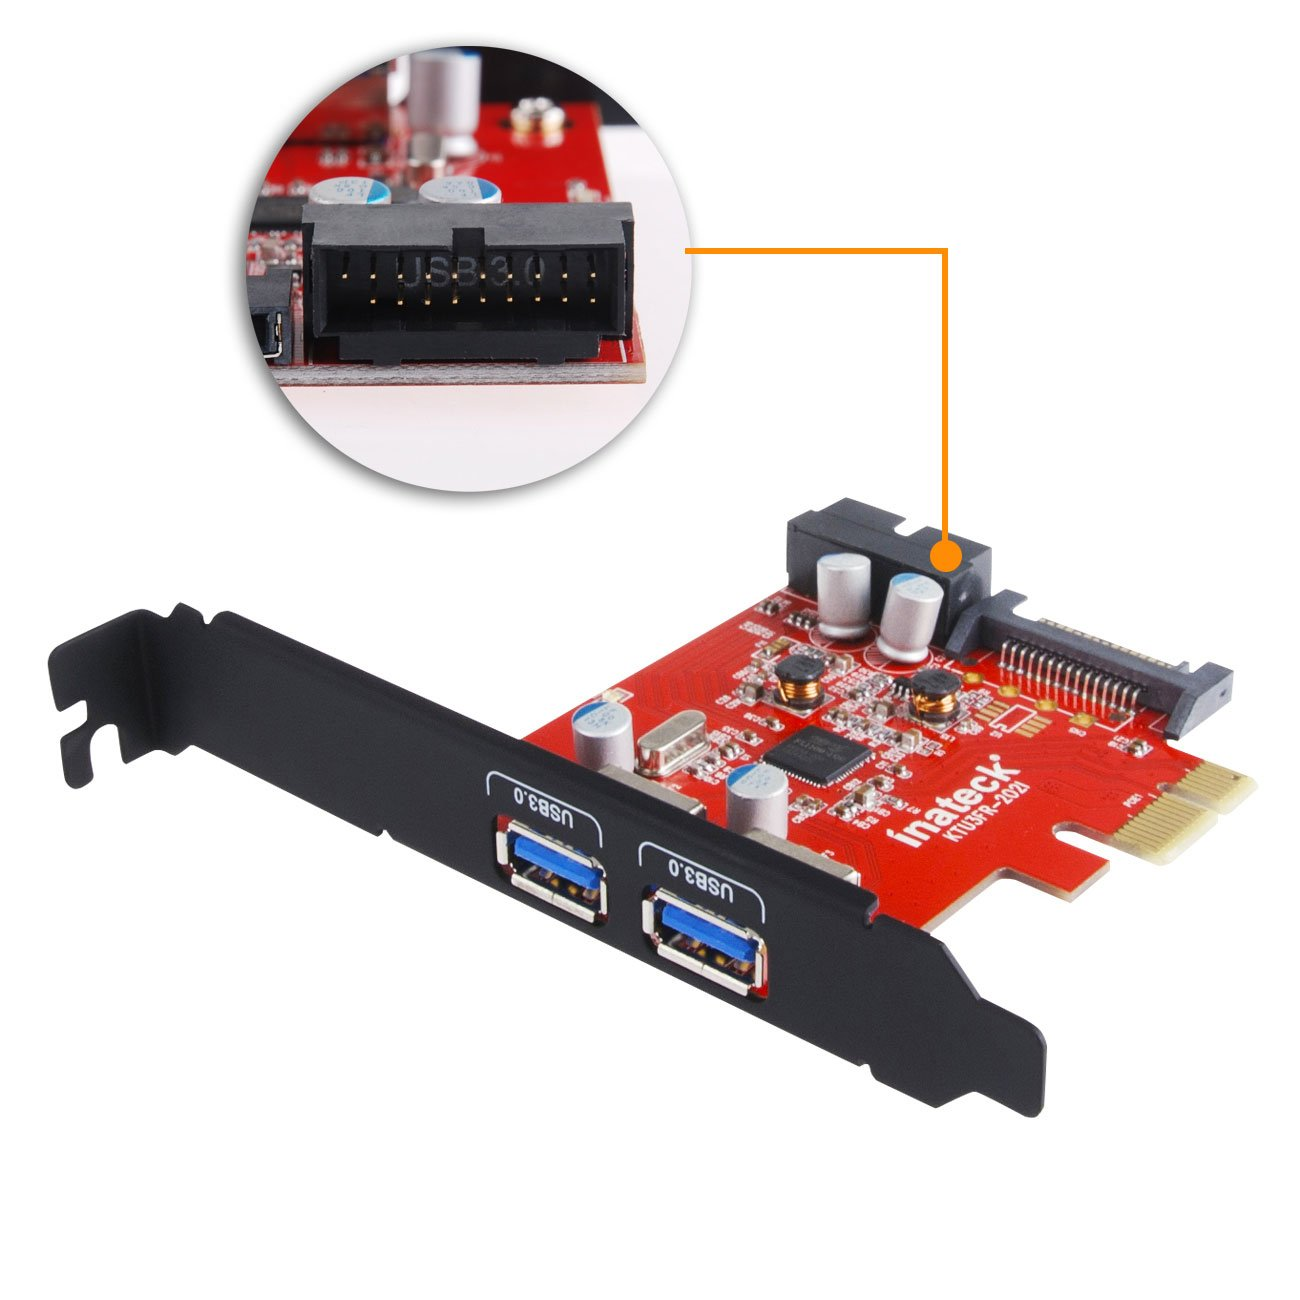 Inateck Pci E To Usb 30 2 Port Express Card And 15 Toshiba Satellite P35 Laptop Schematic Diagramla2371 Pin Power Connector Mini Hub Controller Adapter With Internal